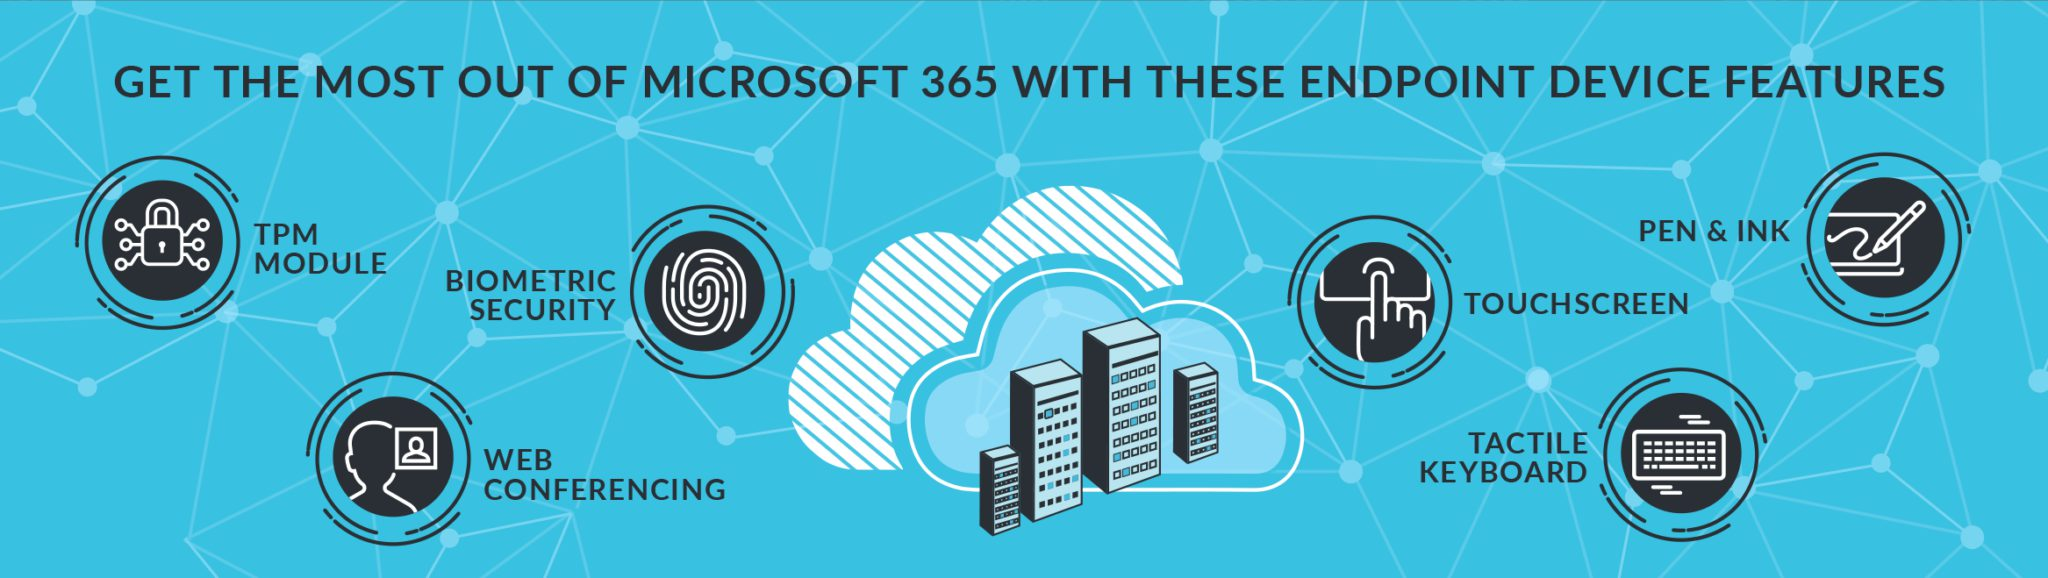 Get More Out of Your Microsoft 365 Deployment